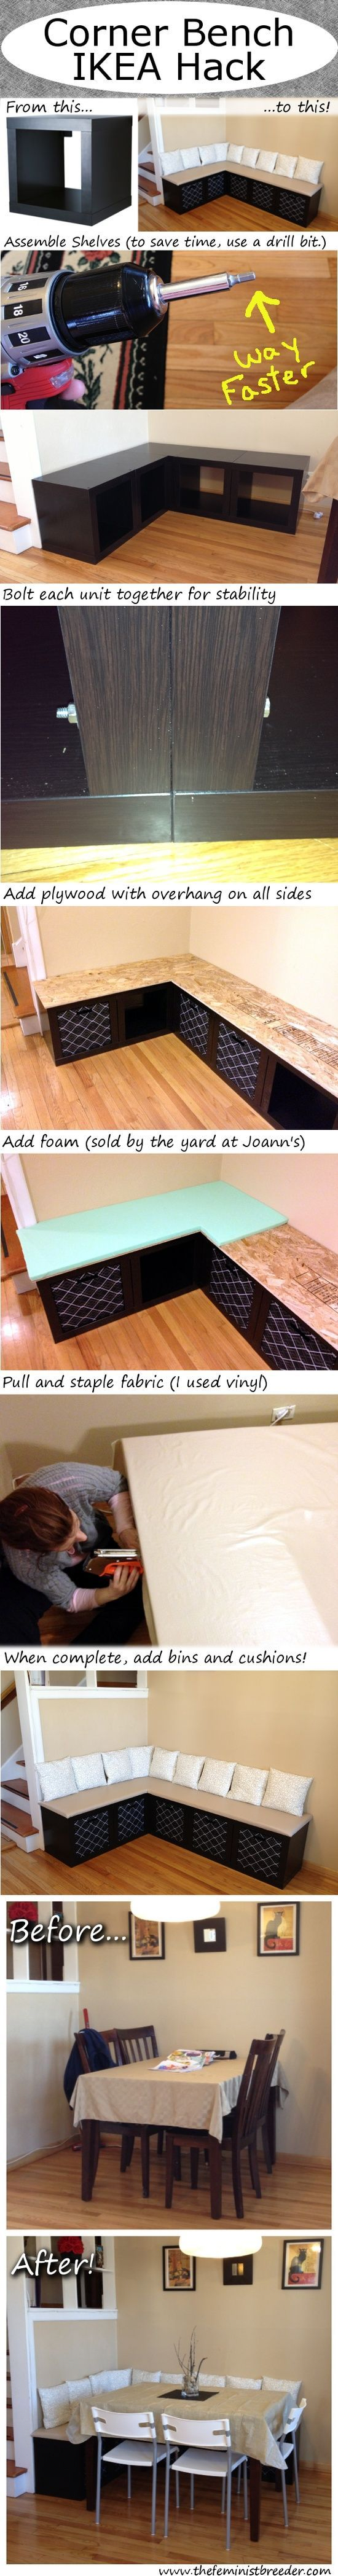 Marvelous A Corner Bench With Storage Made From Some Ikea Wall Shelves Machost Co Dining Chair Design Ideas Machostcouk